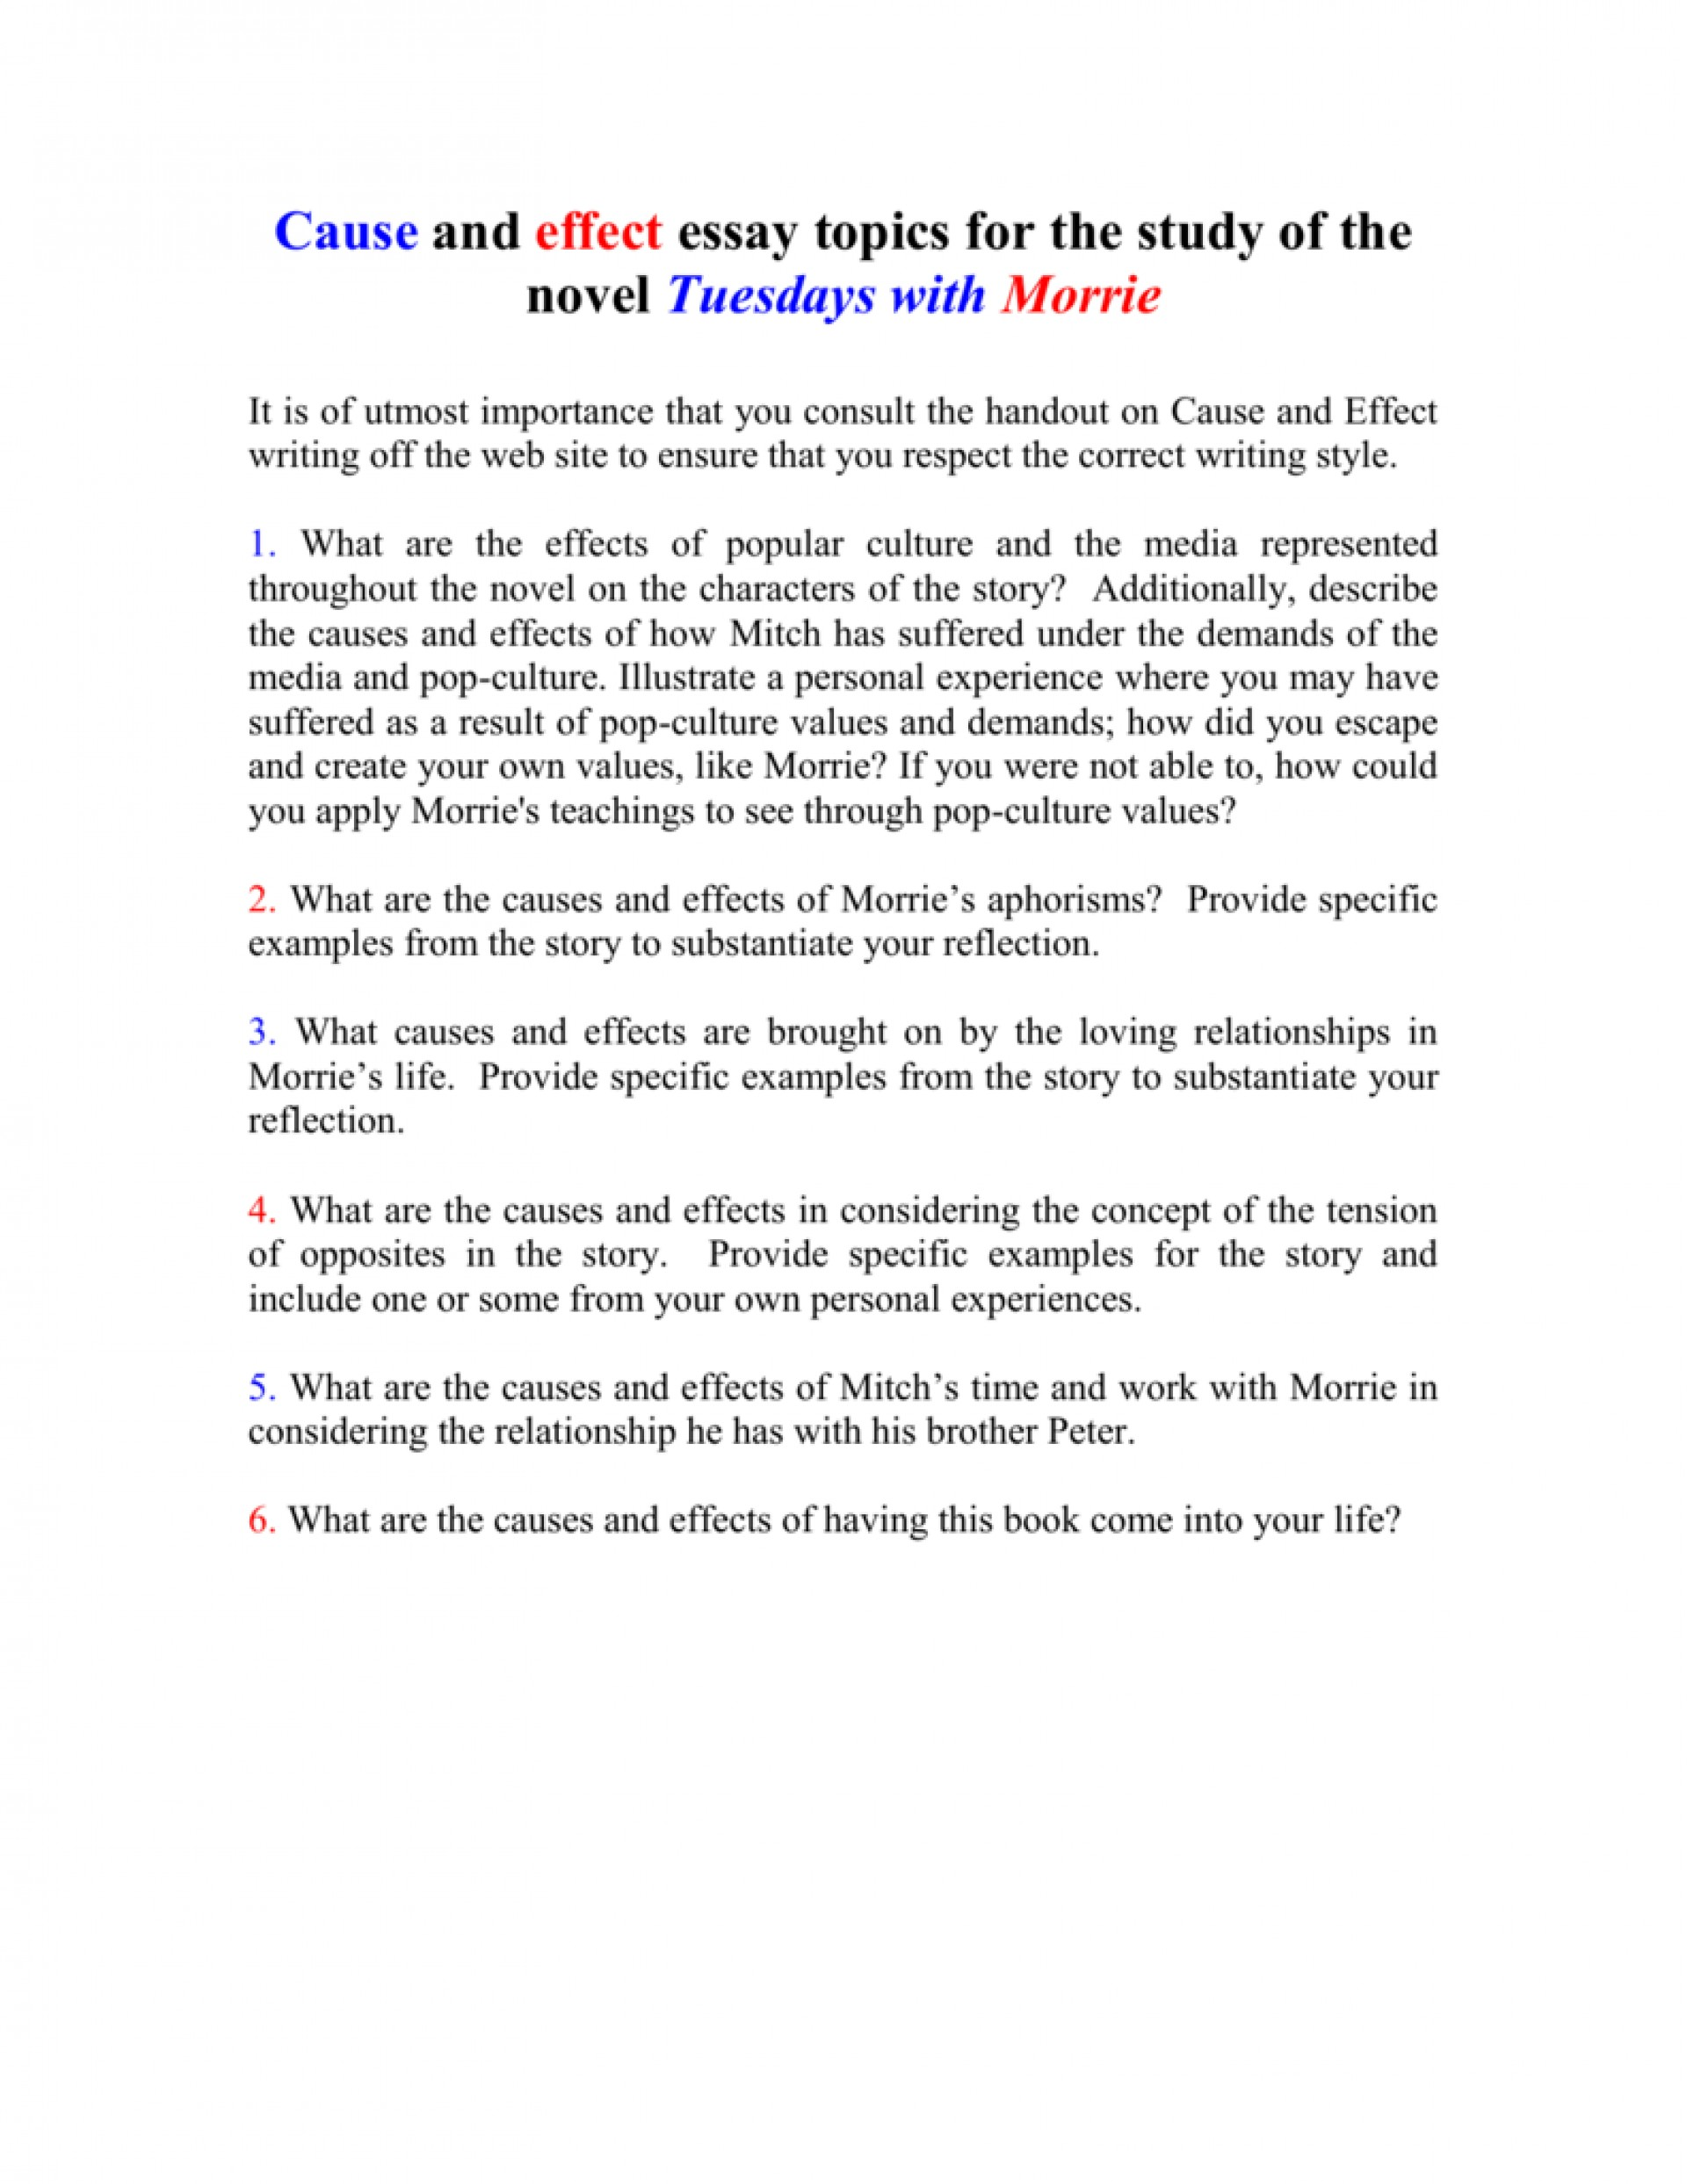 013 Essay Example On Tuesdays With Morrie 008010712 1 Unusual Analytical Reflection Paper Argumentative 1920